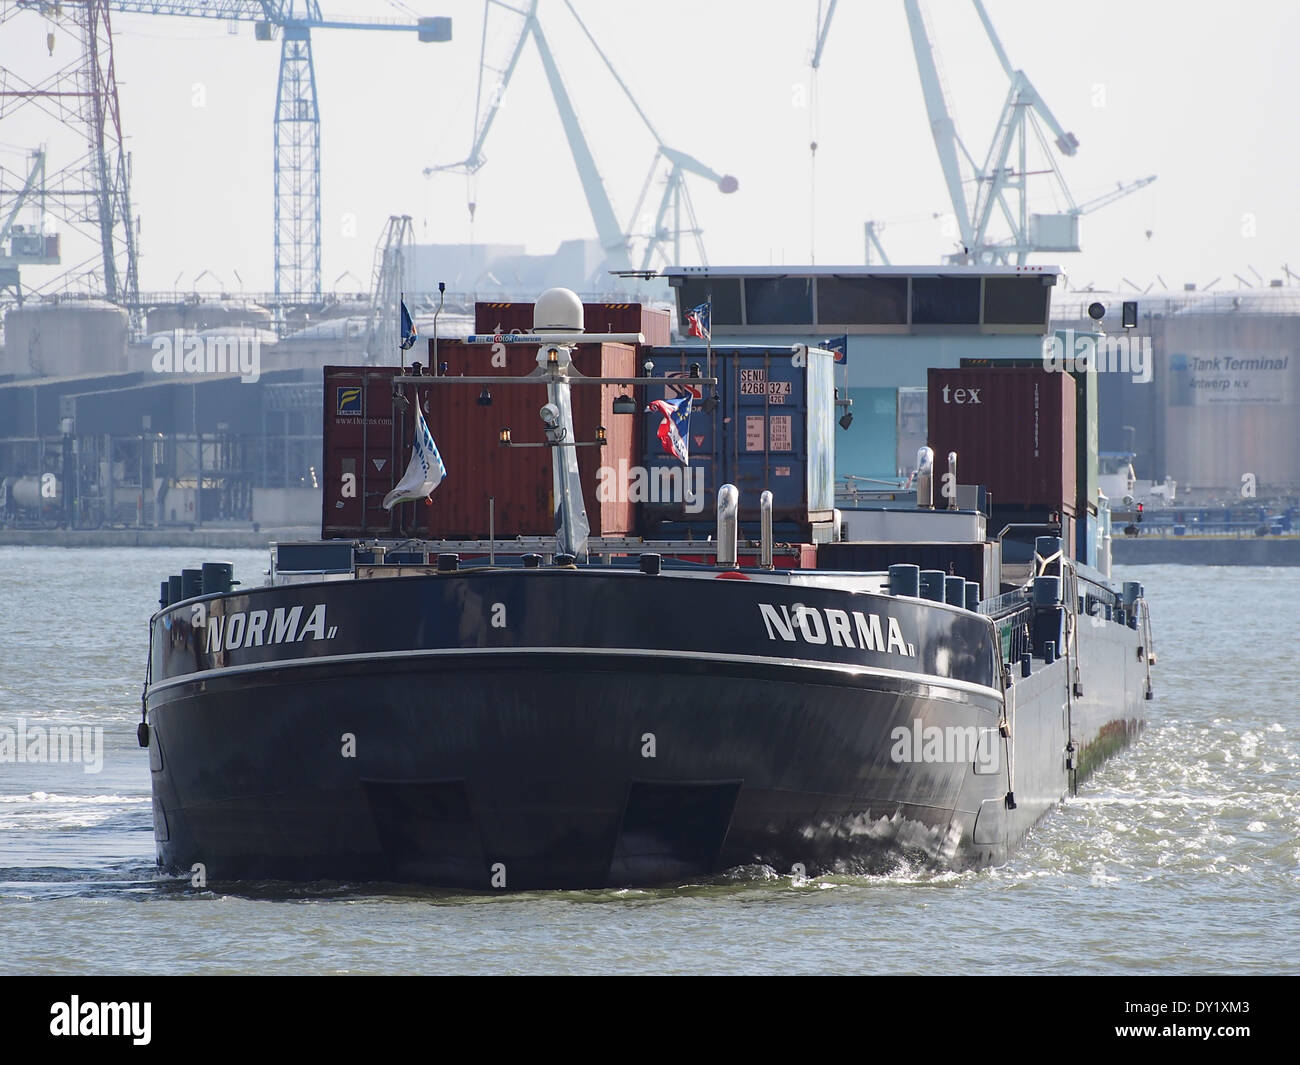 NORMA ENI 02328681 & NORMA II ENI 02329245 at Port of Antwerp pic2 - Stock Image